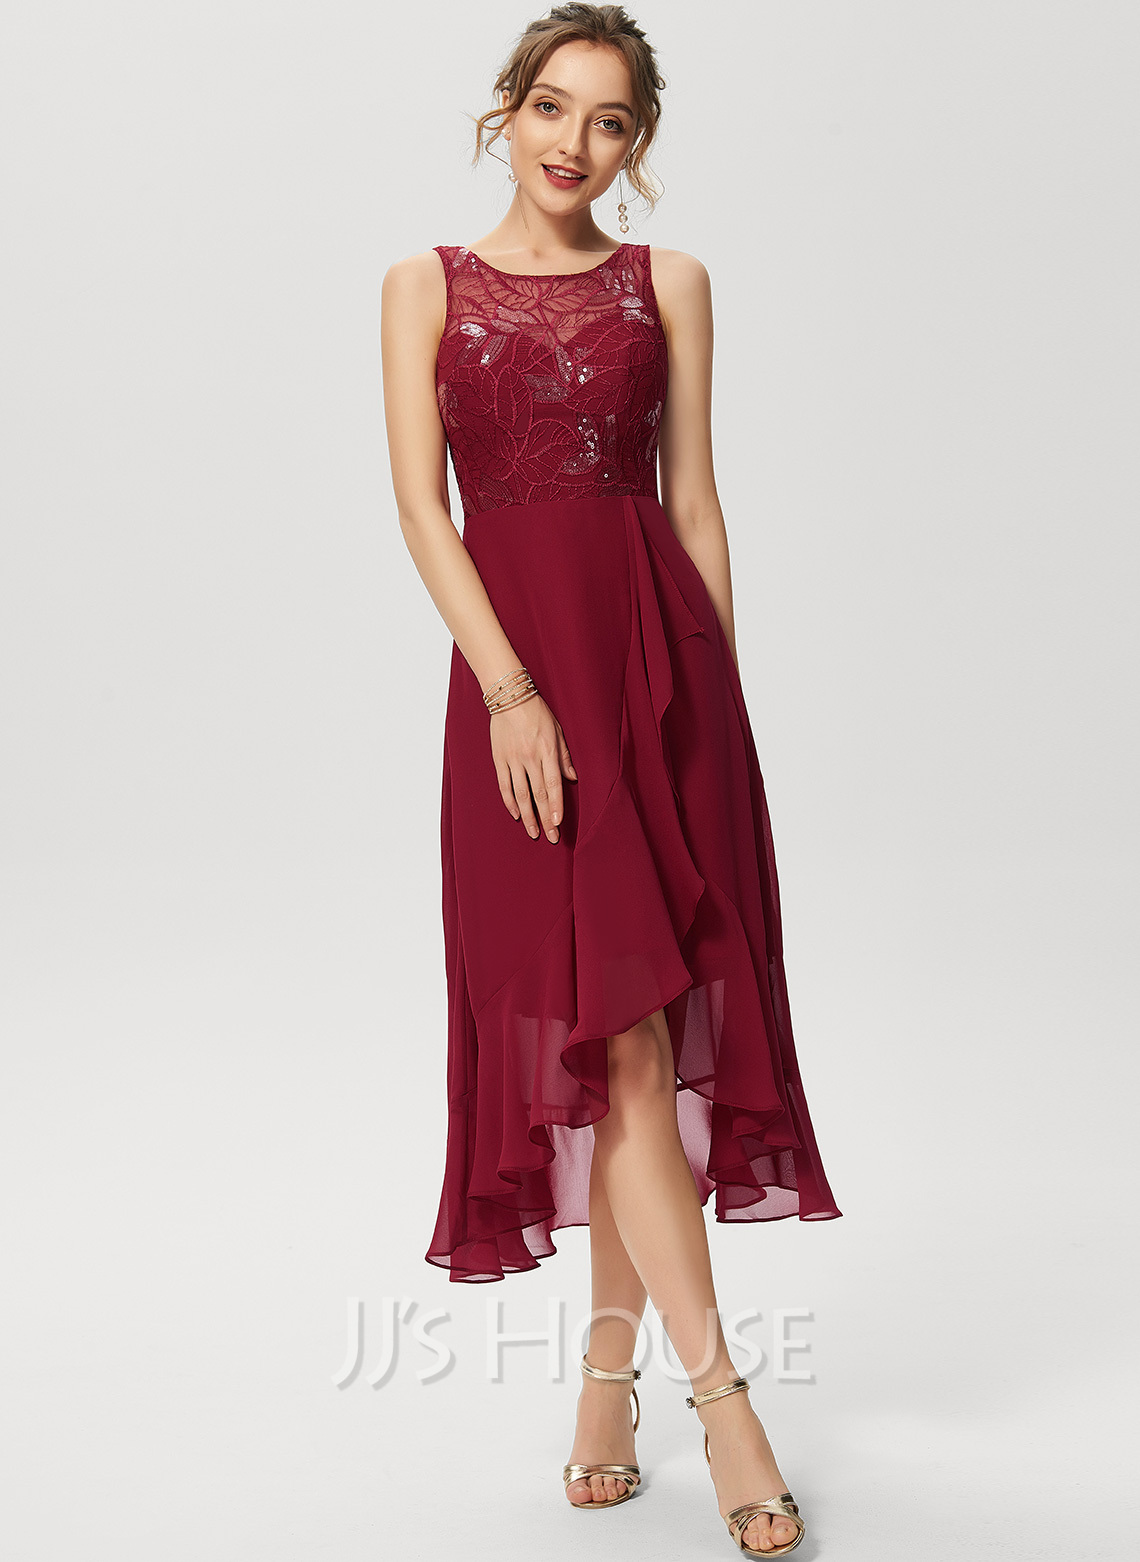 A-Line Scoop Neck Asymmetrical Chiffon Lace Cocktail Dress With Sequins Cascading Ruffles